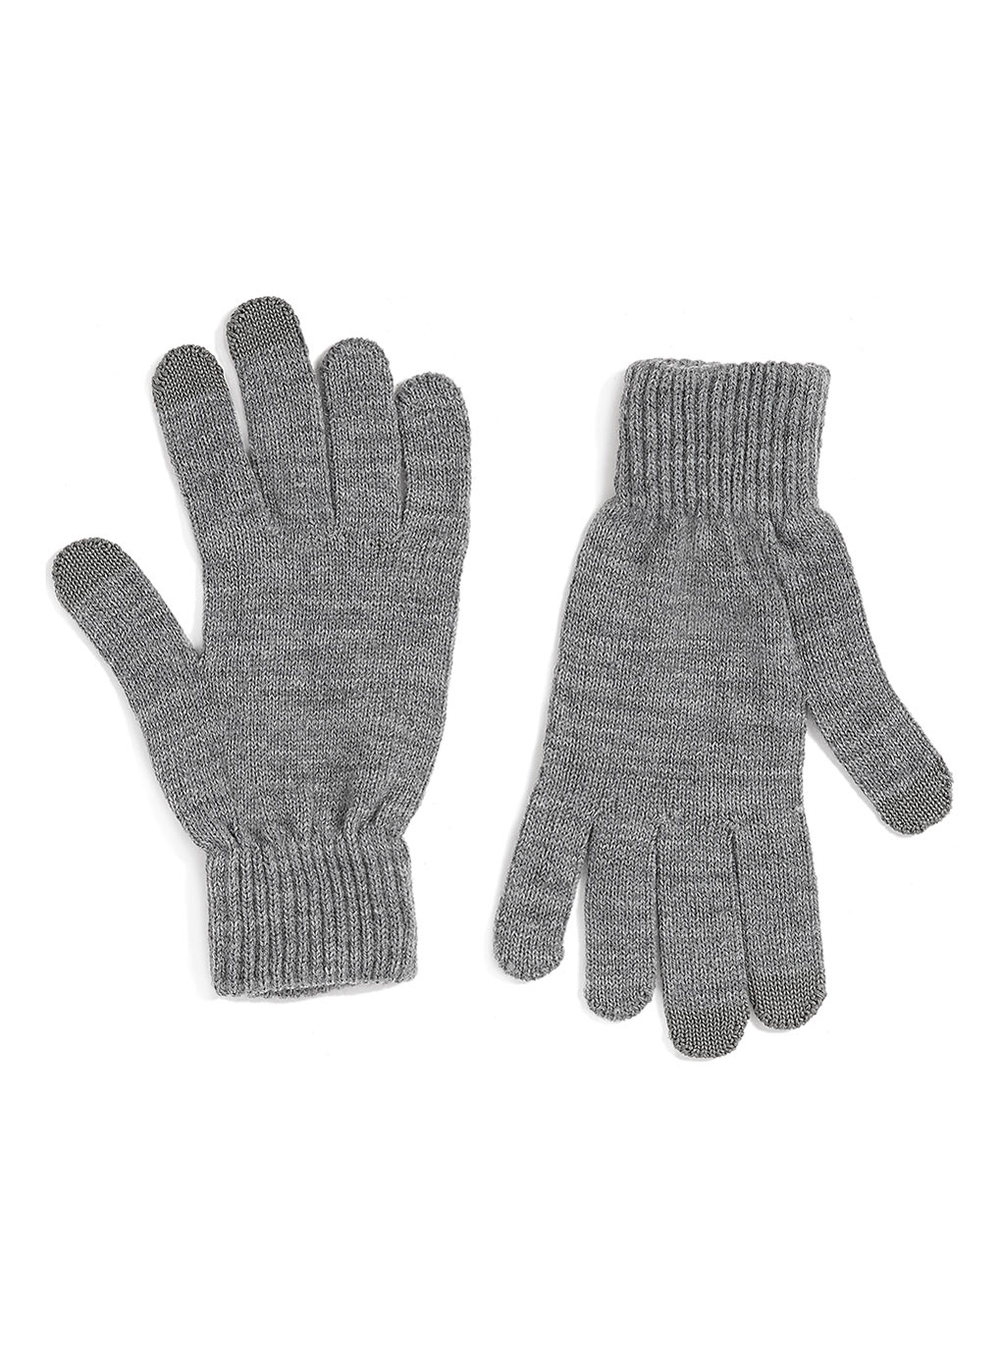 Grey Touchscreen Gloves, was $12, now $9.60